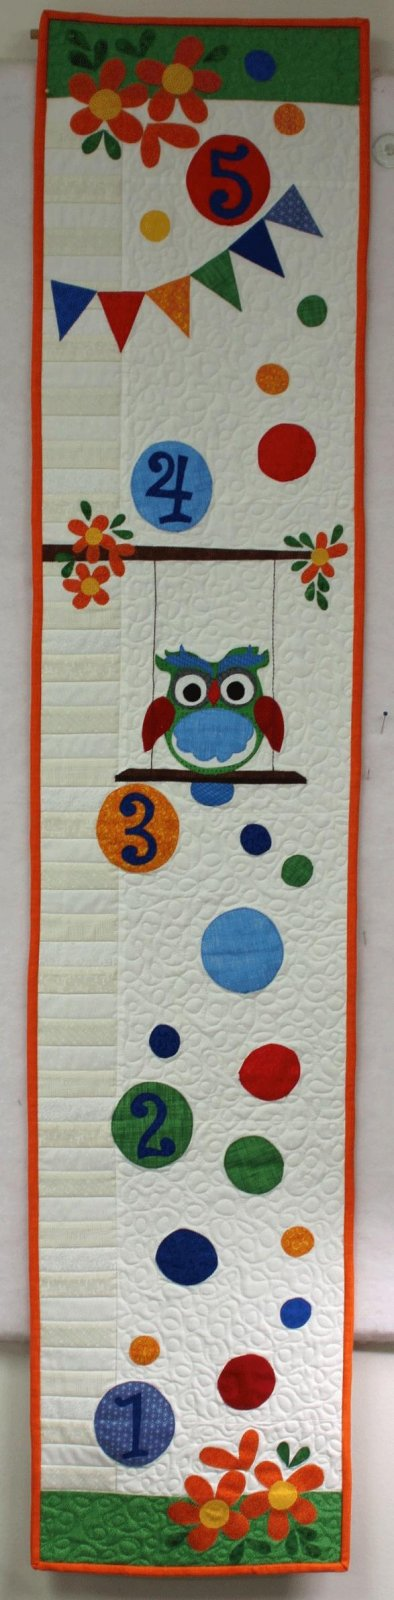 Sale Item! Owl Grown-Up Growth Chart Kit